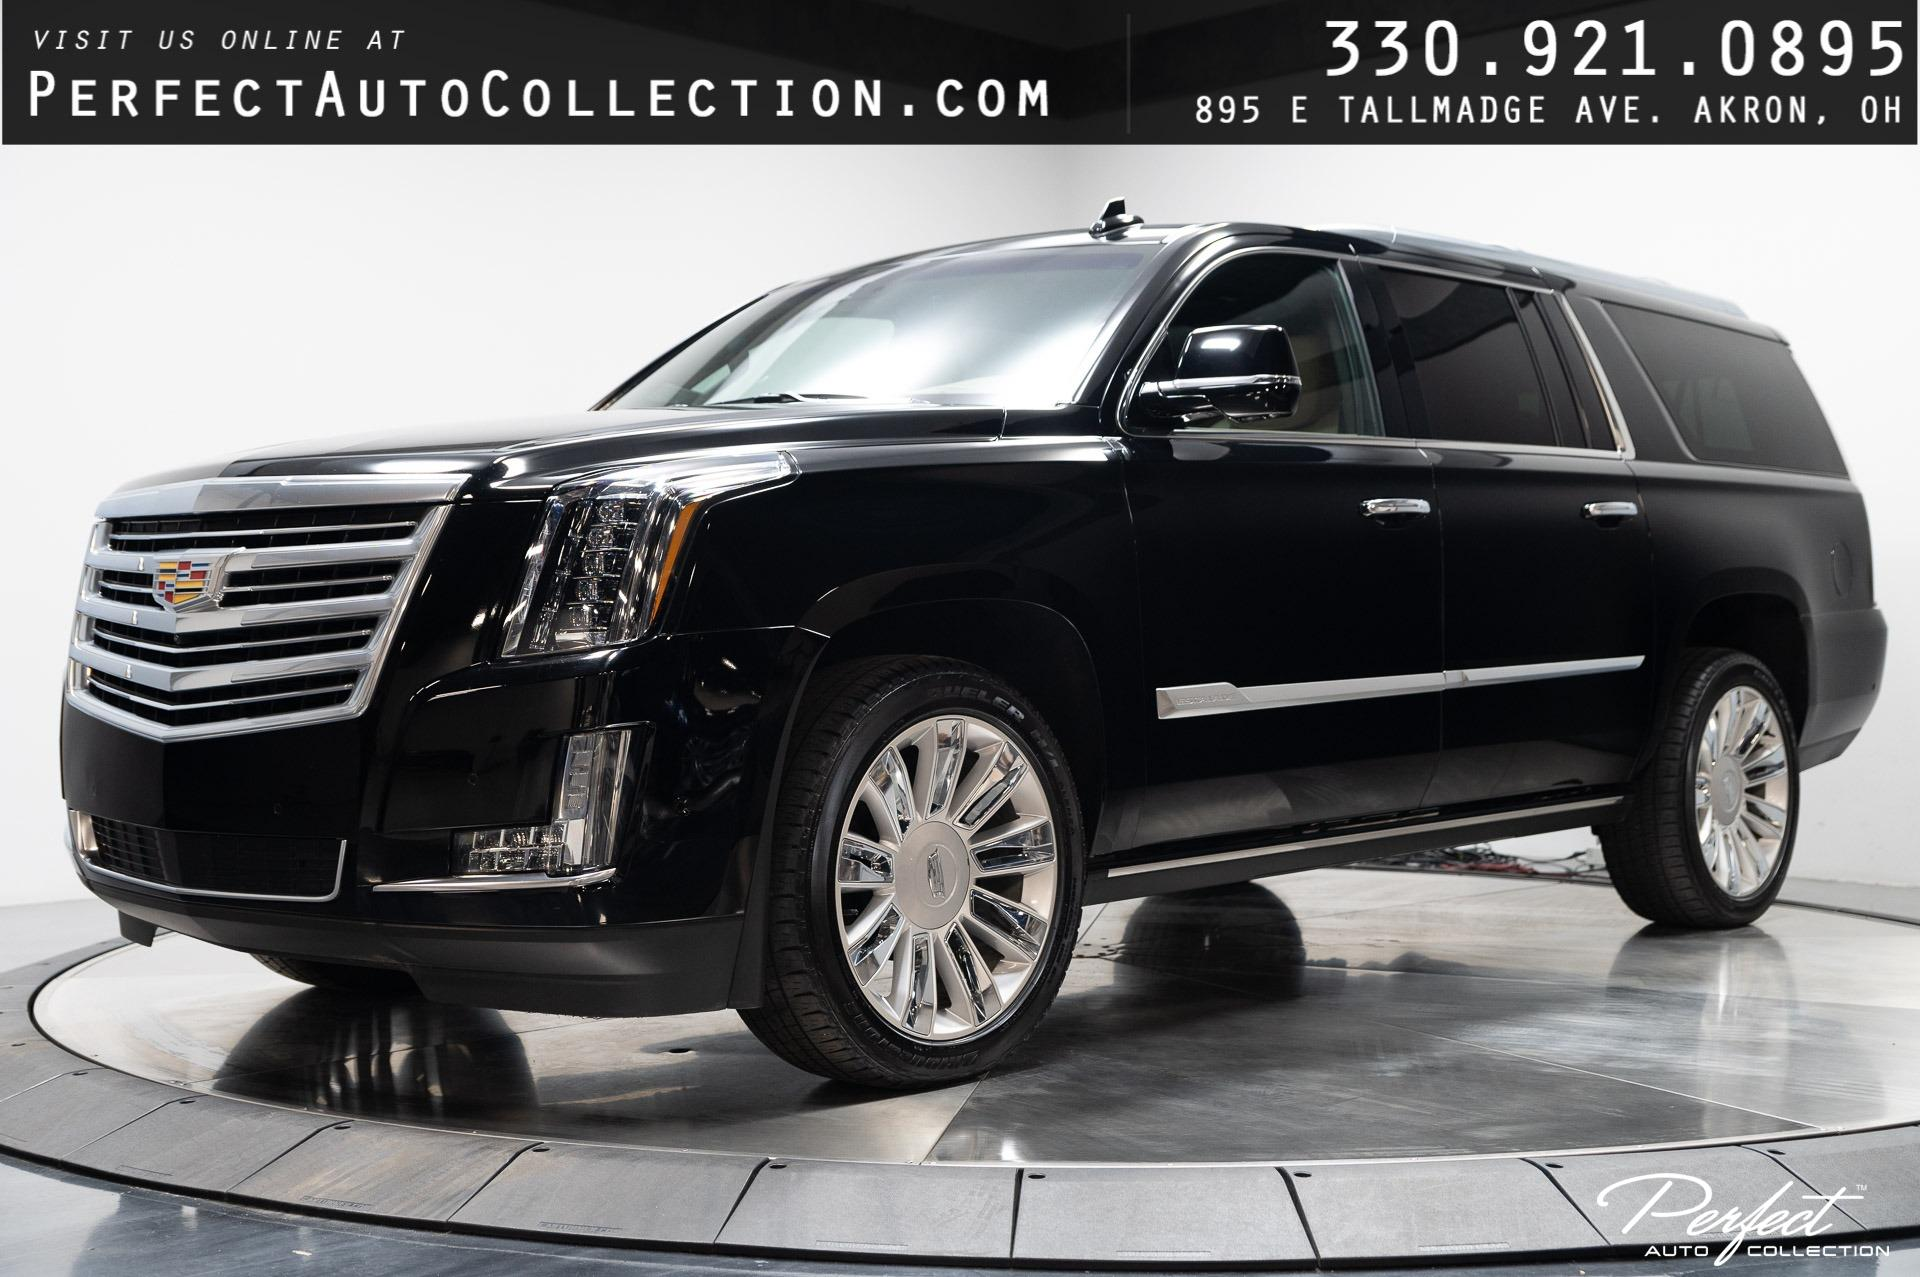 Used 2019 Cadillac Escalade ESV Platinum for sale $68,995 at Perfect Auto Collection in Akron OH 44310 1